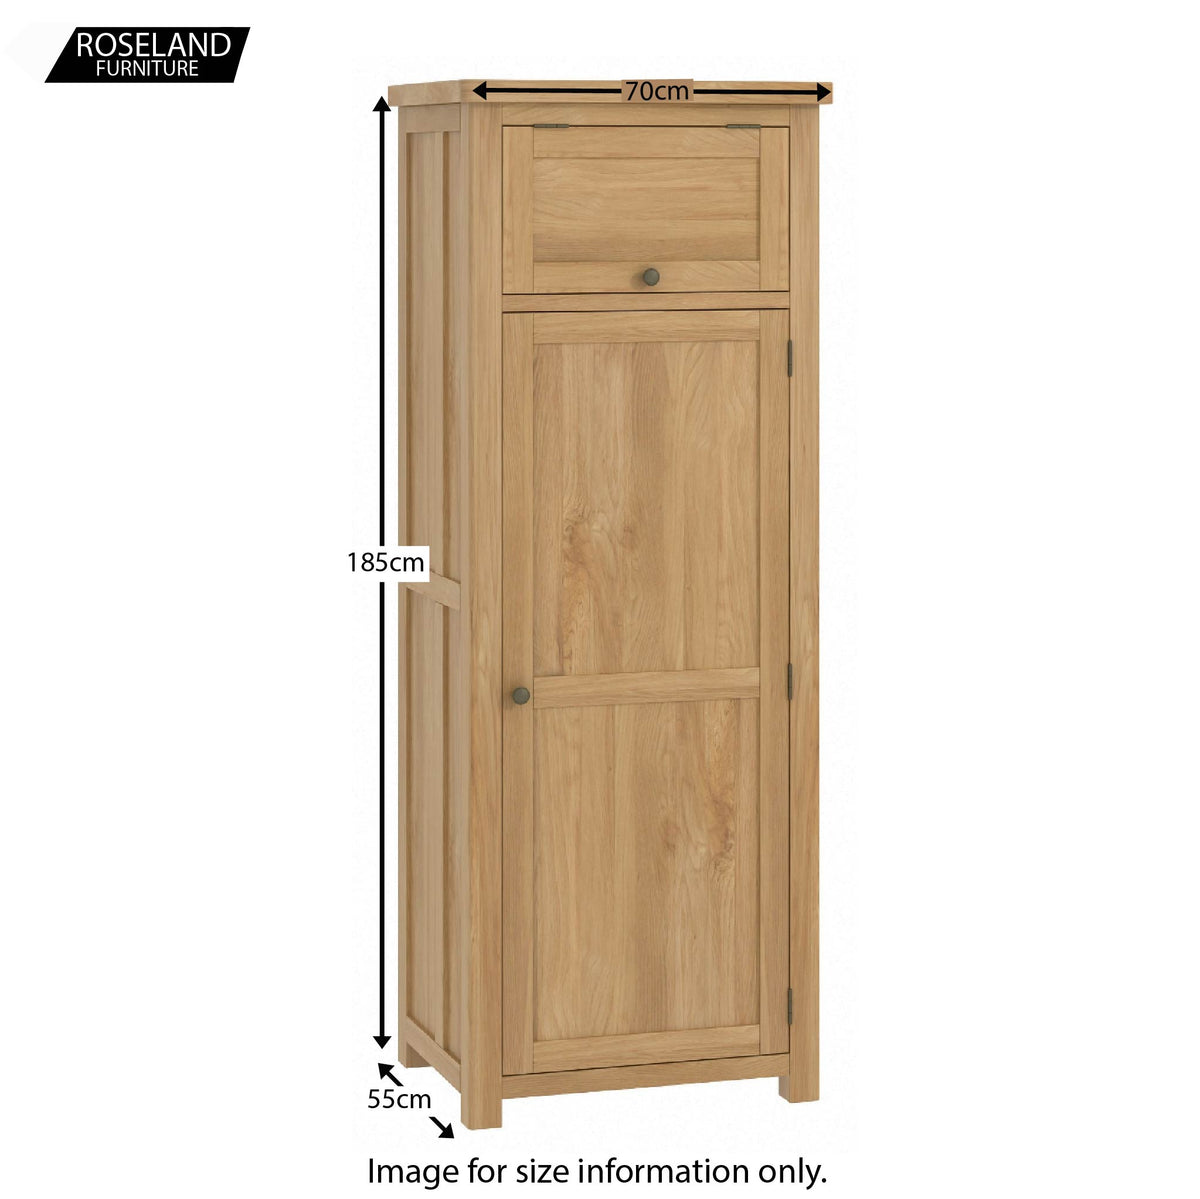 Roseland Oak Small Larder Unit - Size Guide